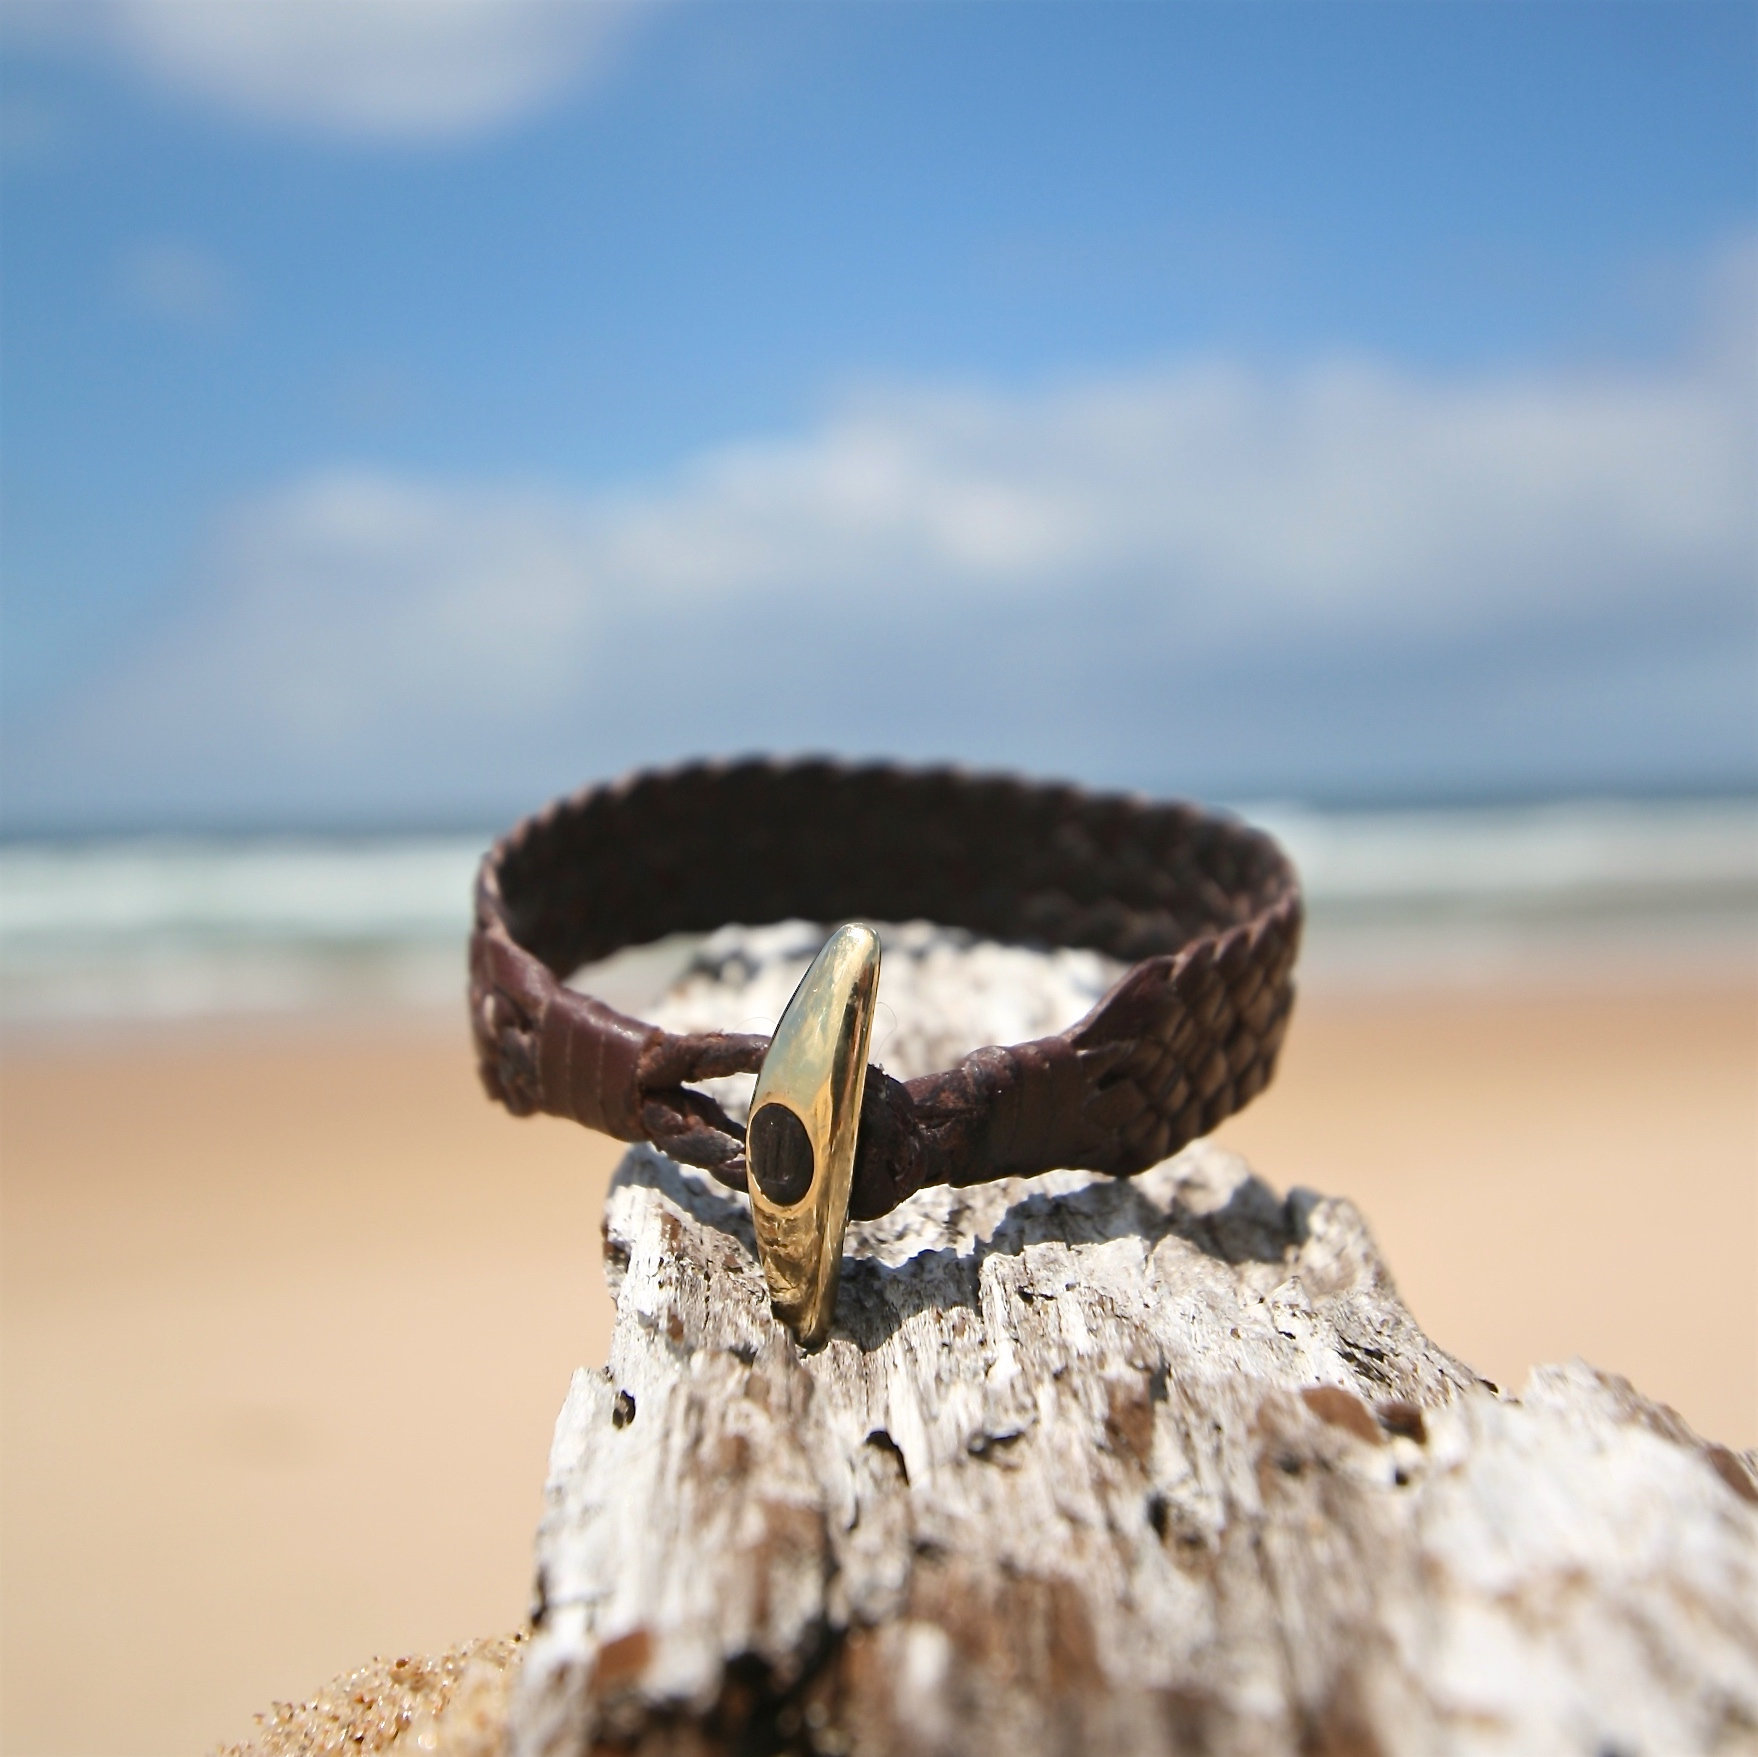 Genuine huge 18k gold clasp on leather, super chic luxury bracelet yachting, St Barths signature, gold an leather handmade seaside jewelry